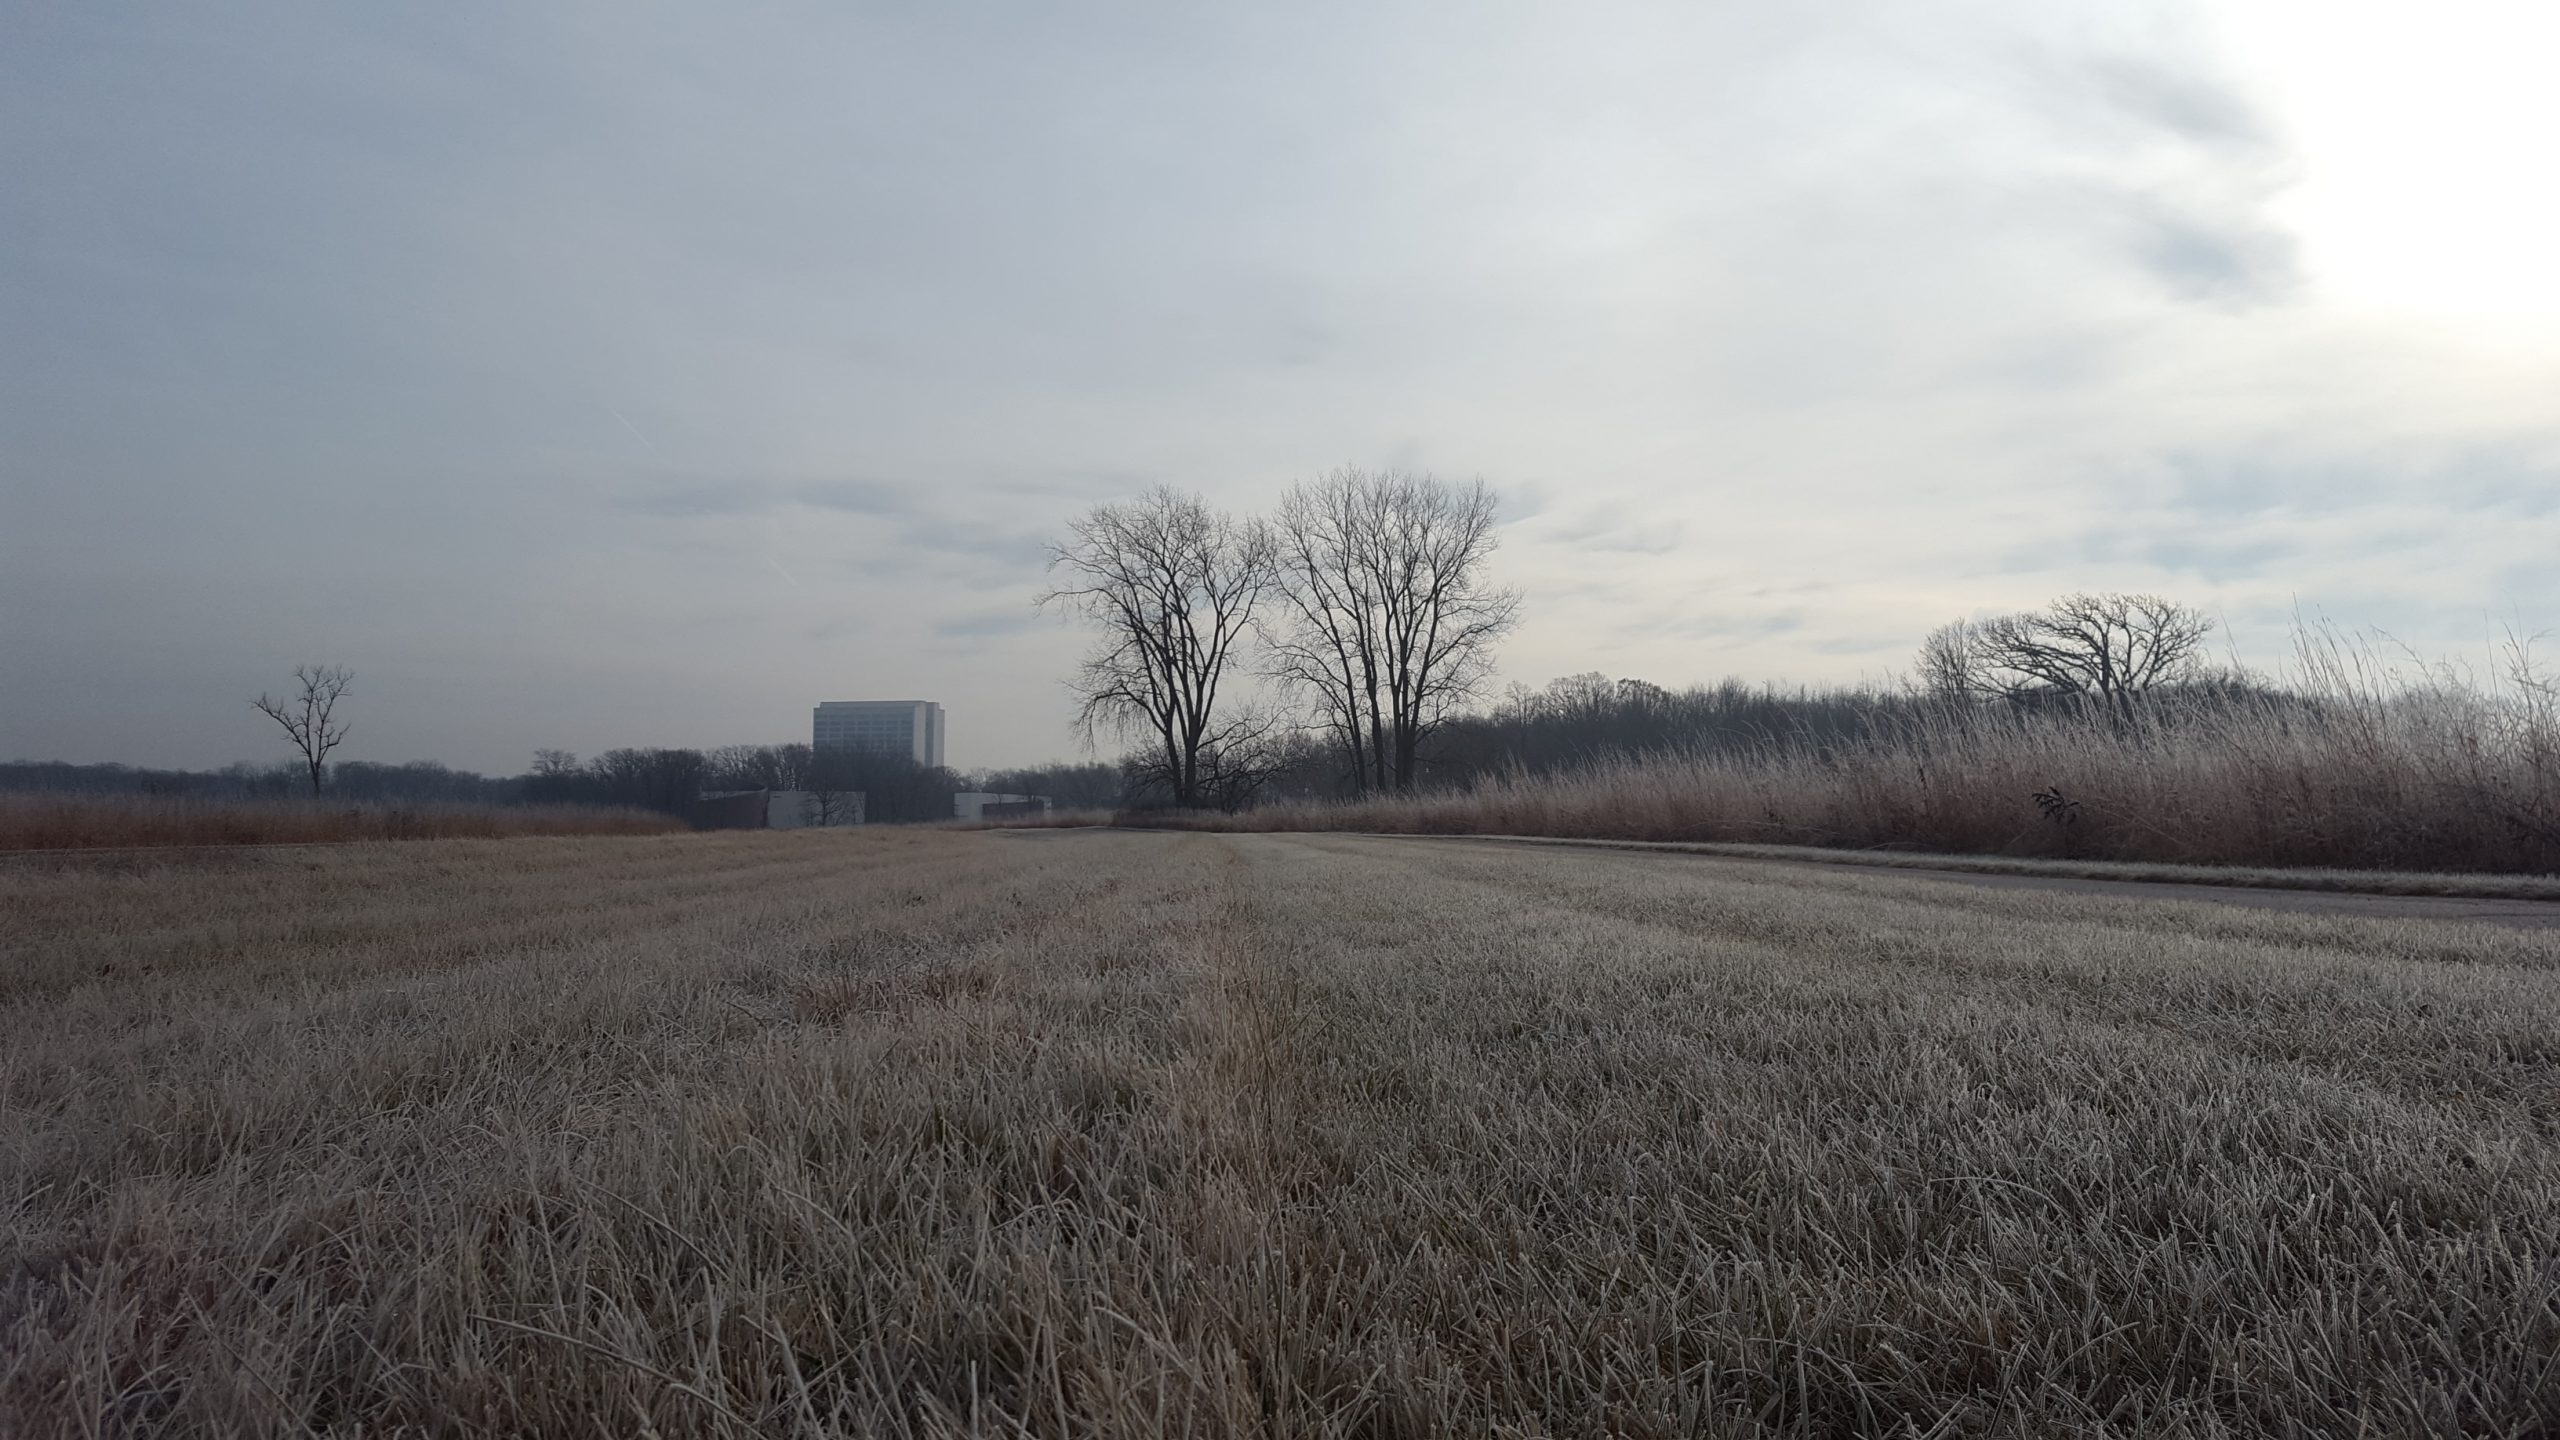 (1/2) It was a sunny but frosty morning at Fermilab on Dec. 20, 2019. nature, landscape, winter, sky Photo: Marco Mambelli